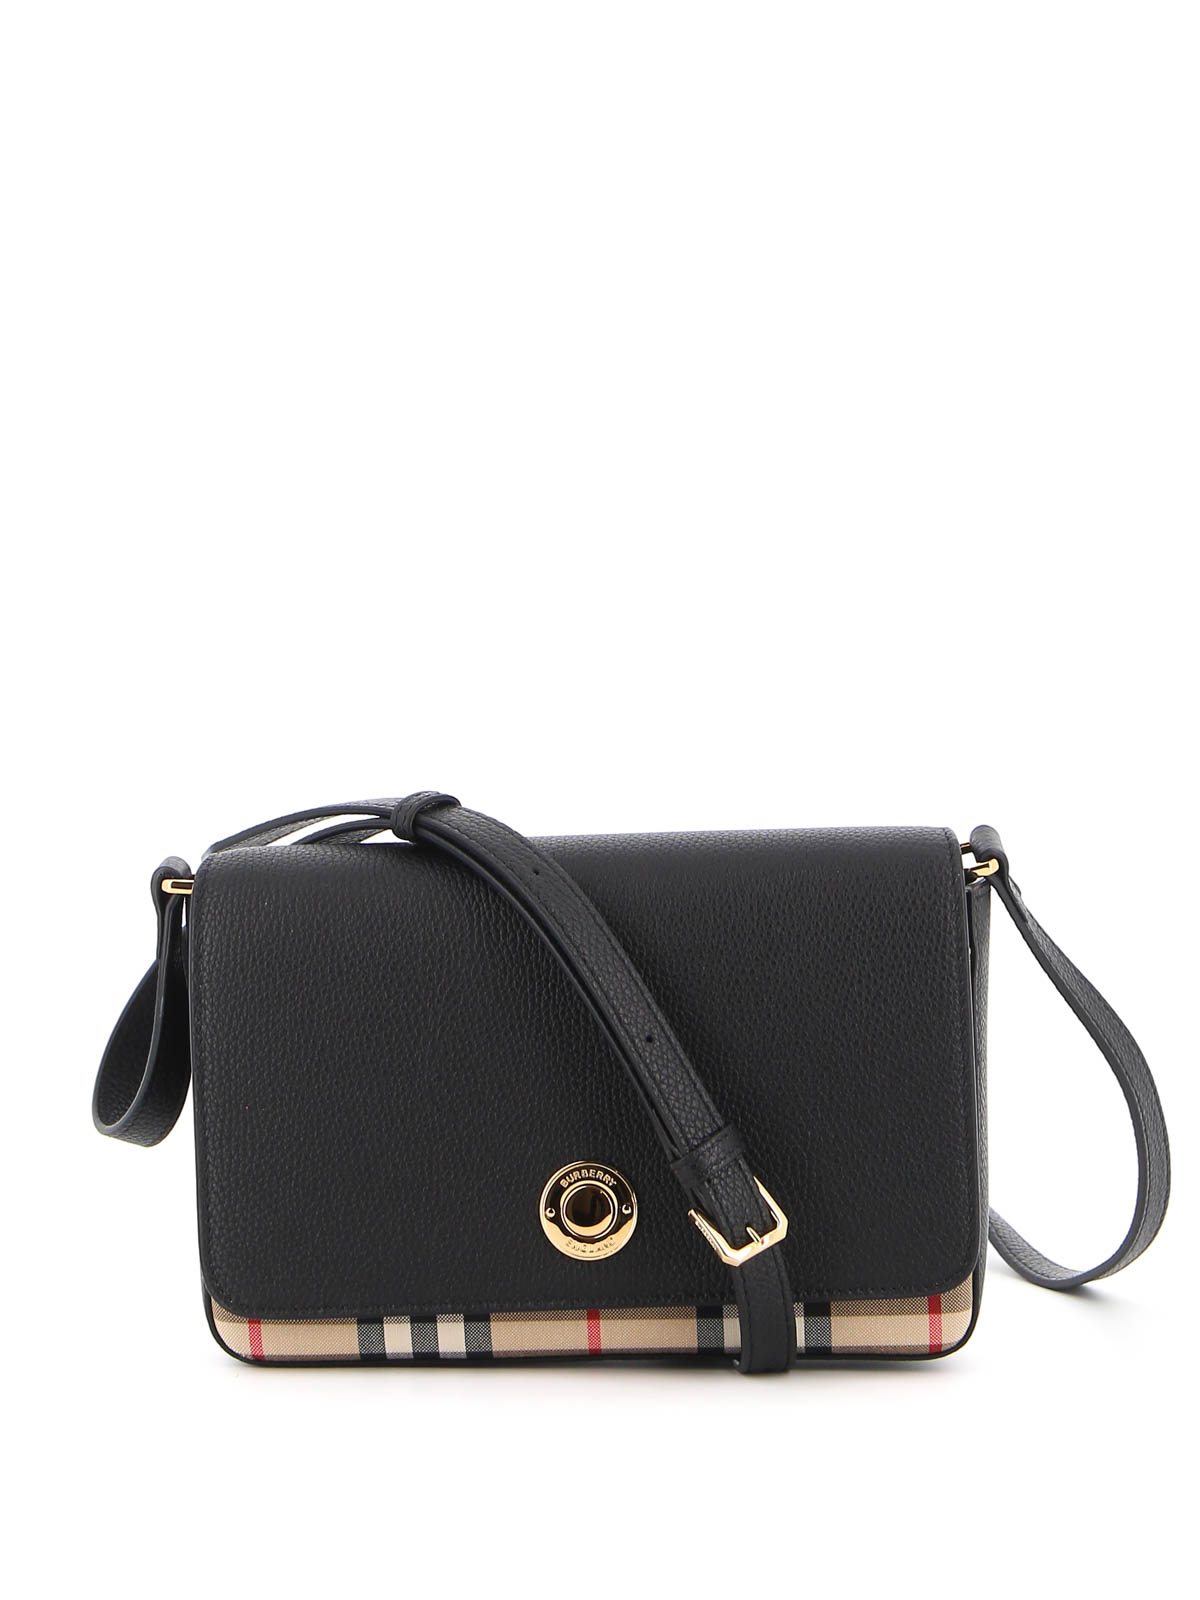 Burberry Canvases HAMPSHIRE BAG